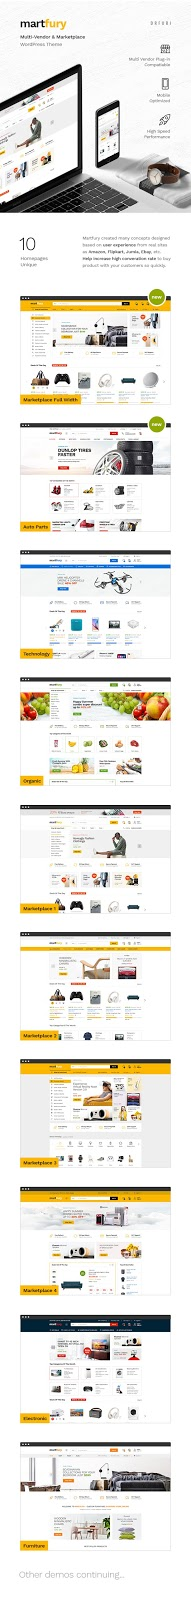 WooCommerce Marketplace WordPress Theme Review - Martfury